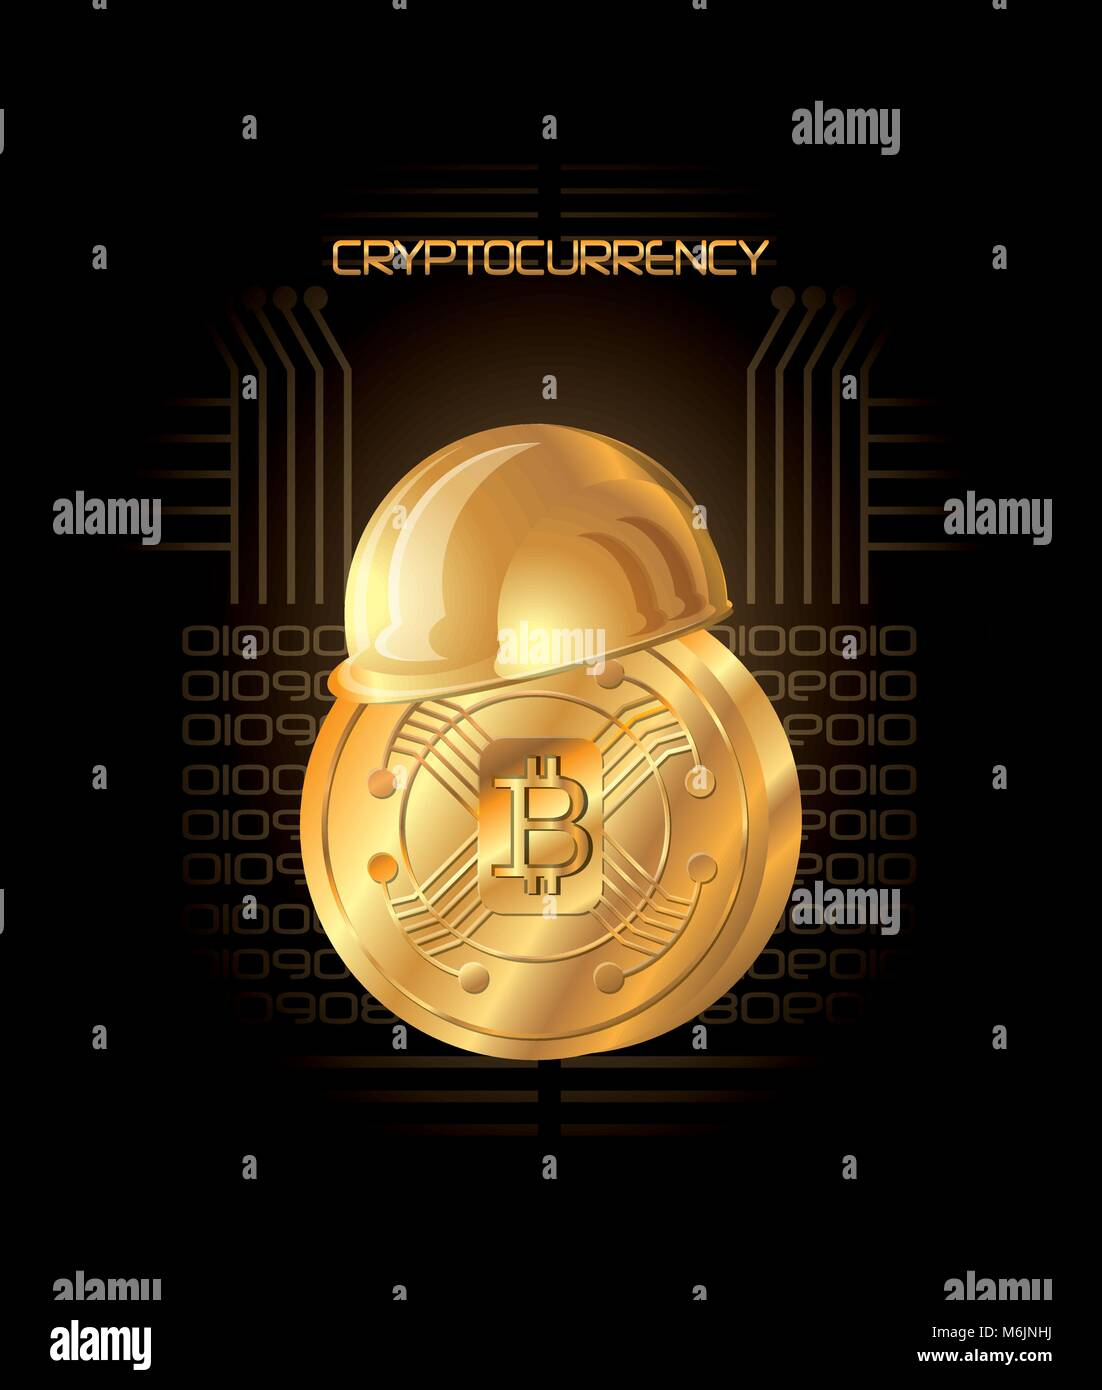 Cryptocurrency icon helmets decentralized crypto currency wallet